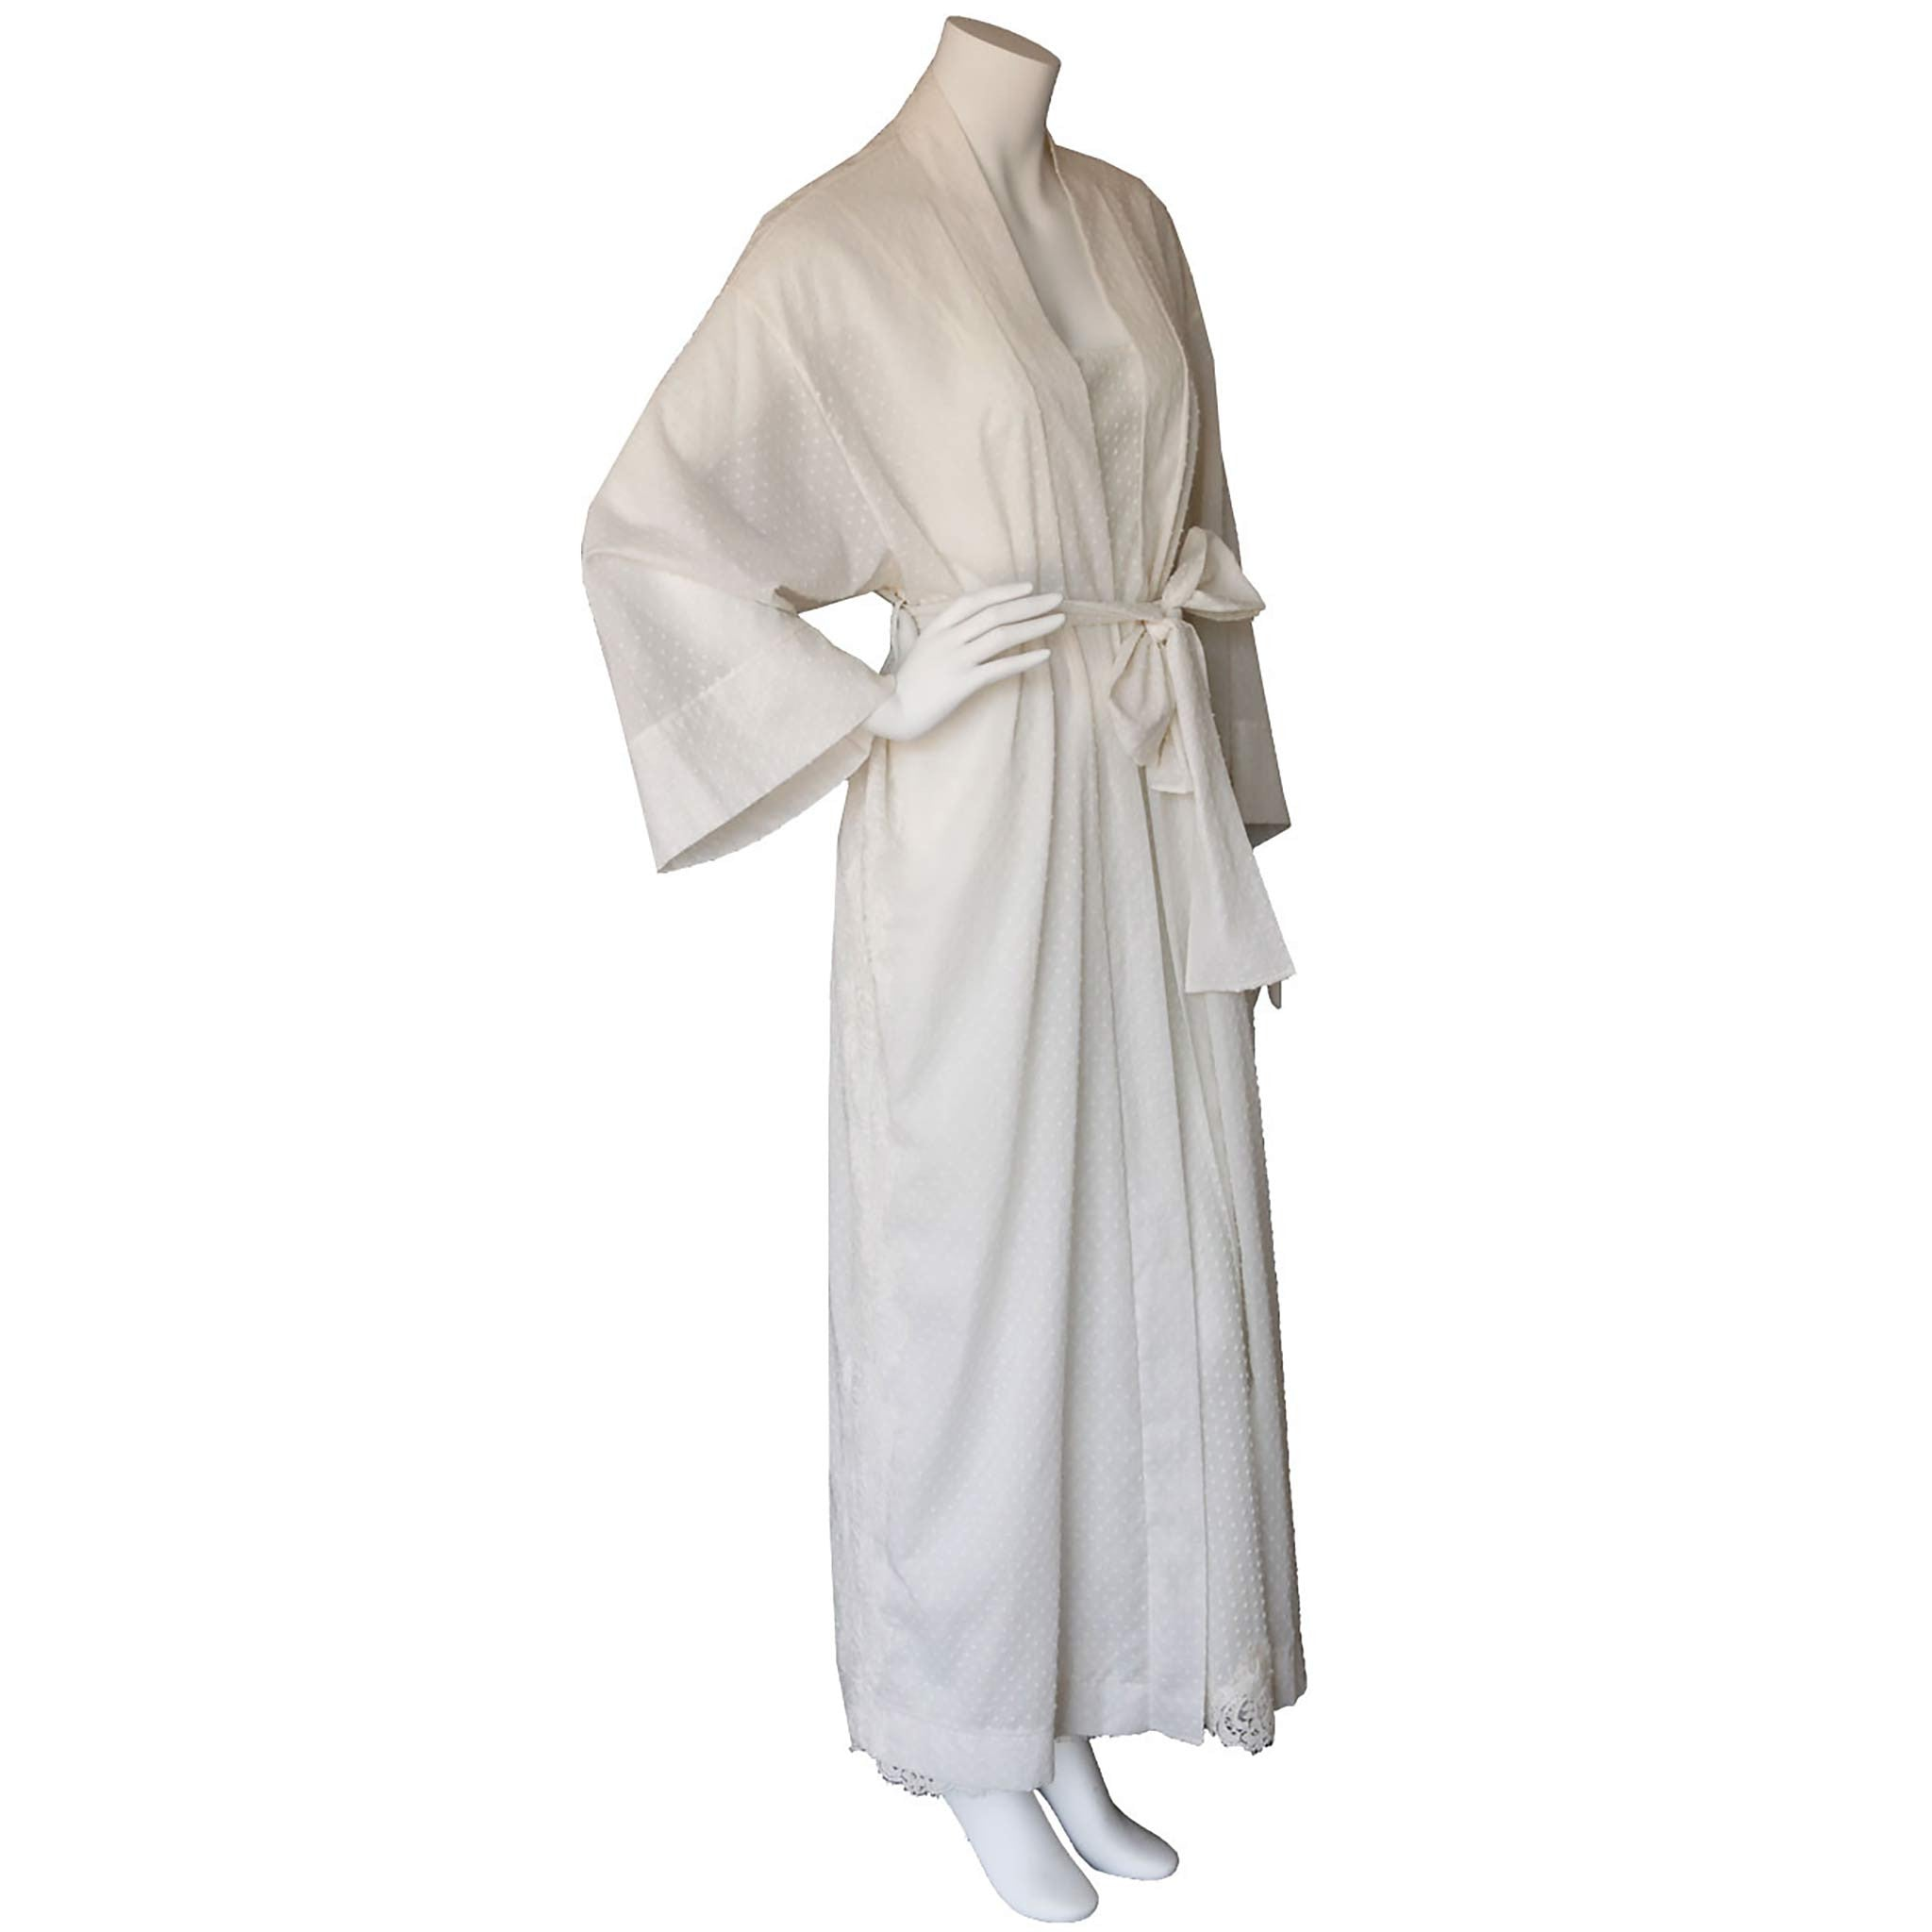 Asteria Kimono Robe in Swiss Cotton Plumetis